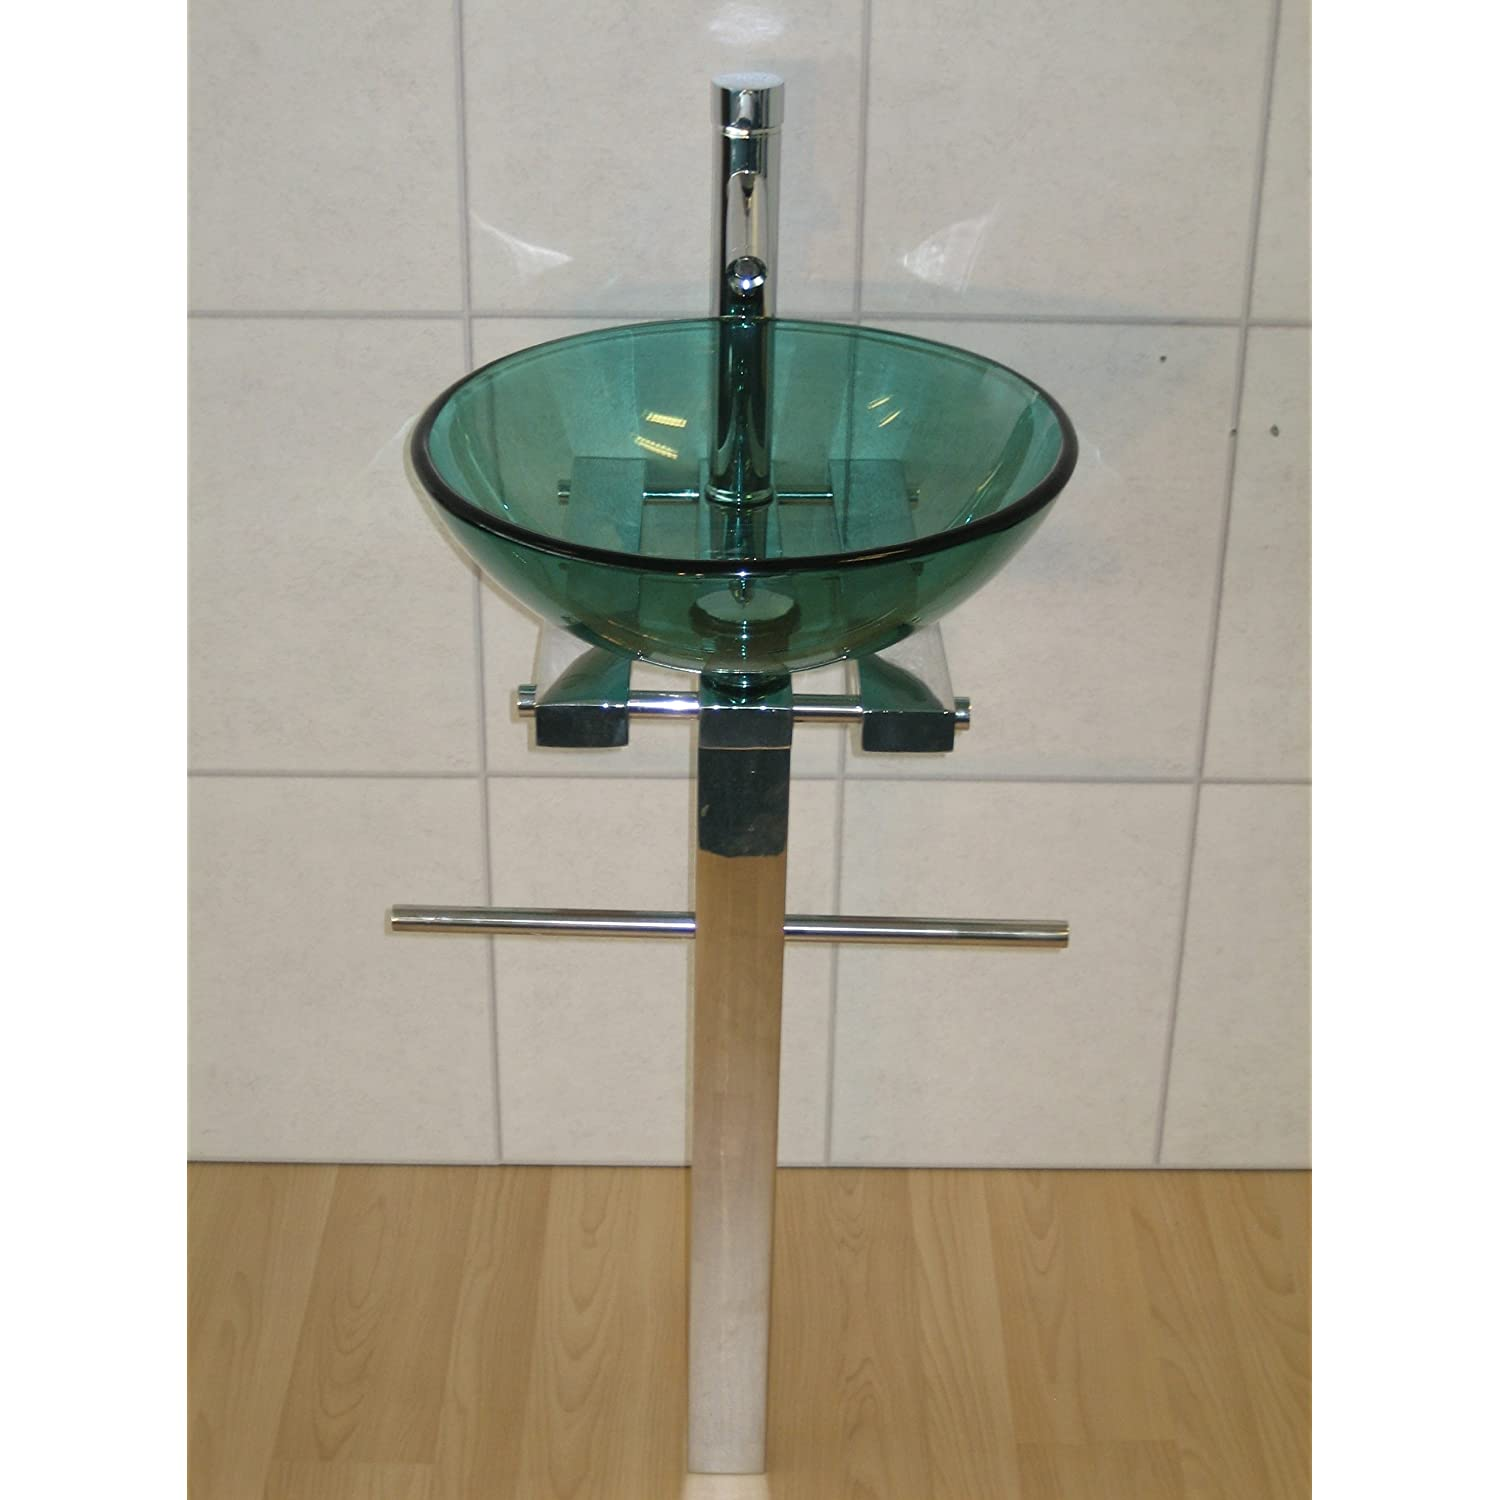 Small Pedestal Basin : ... Bathroom Sink Round Green Glass Wash Basin Pedestal Tap Trap Waste